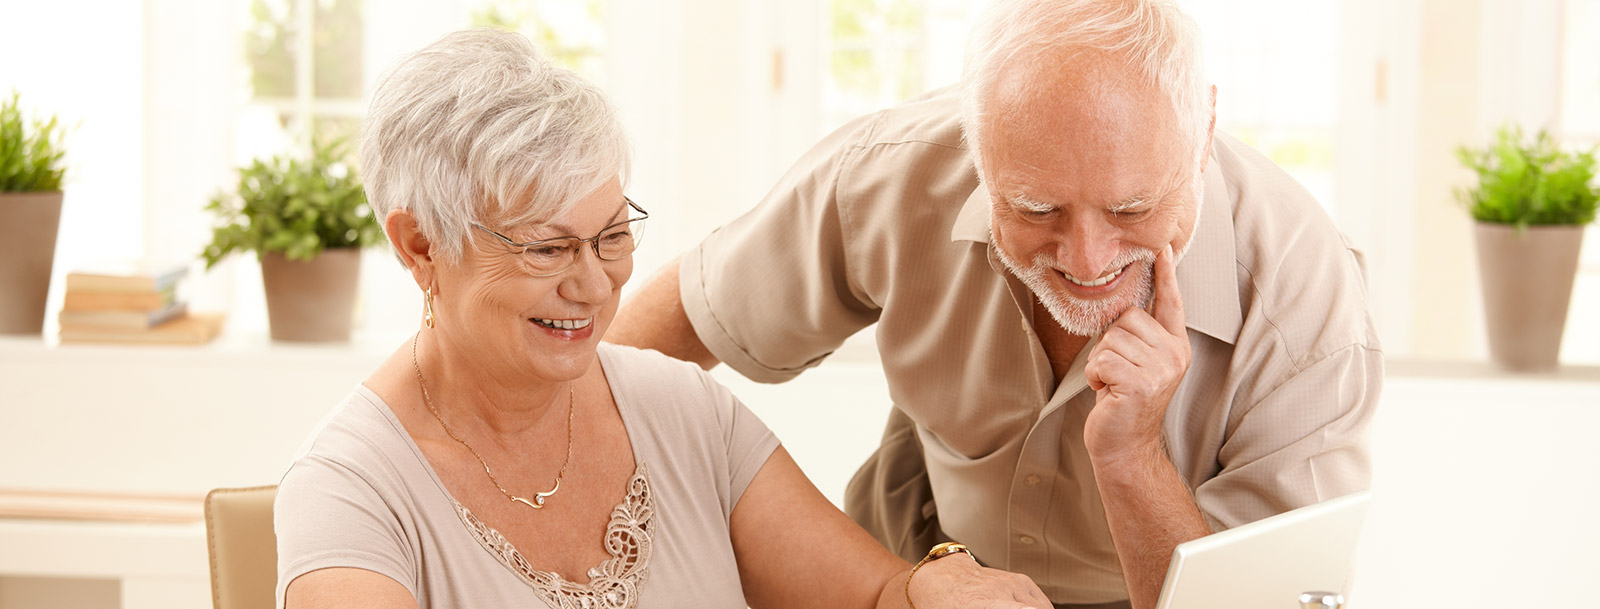 Take a look at the newsletter and see whats going on at the senior living facility in Fort Scott